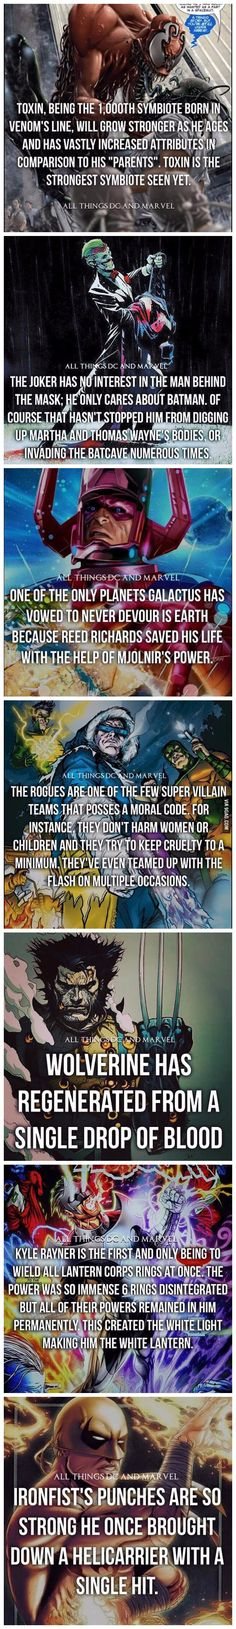 Superhero Facts: Part 3 - 9GAG